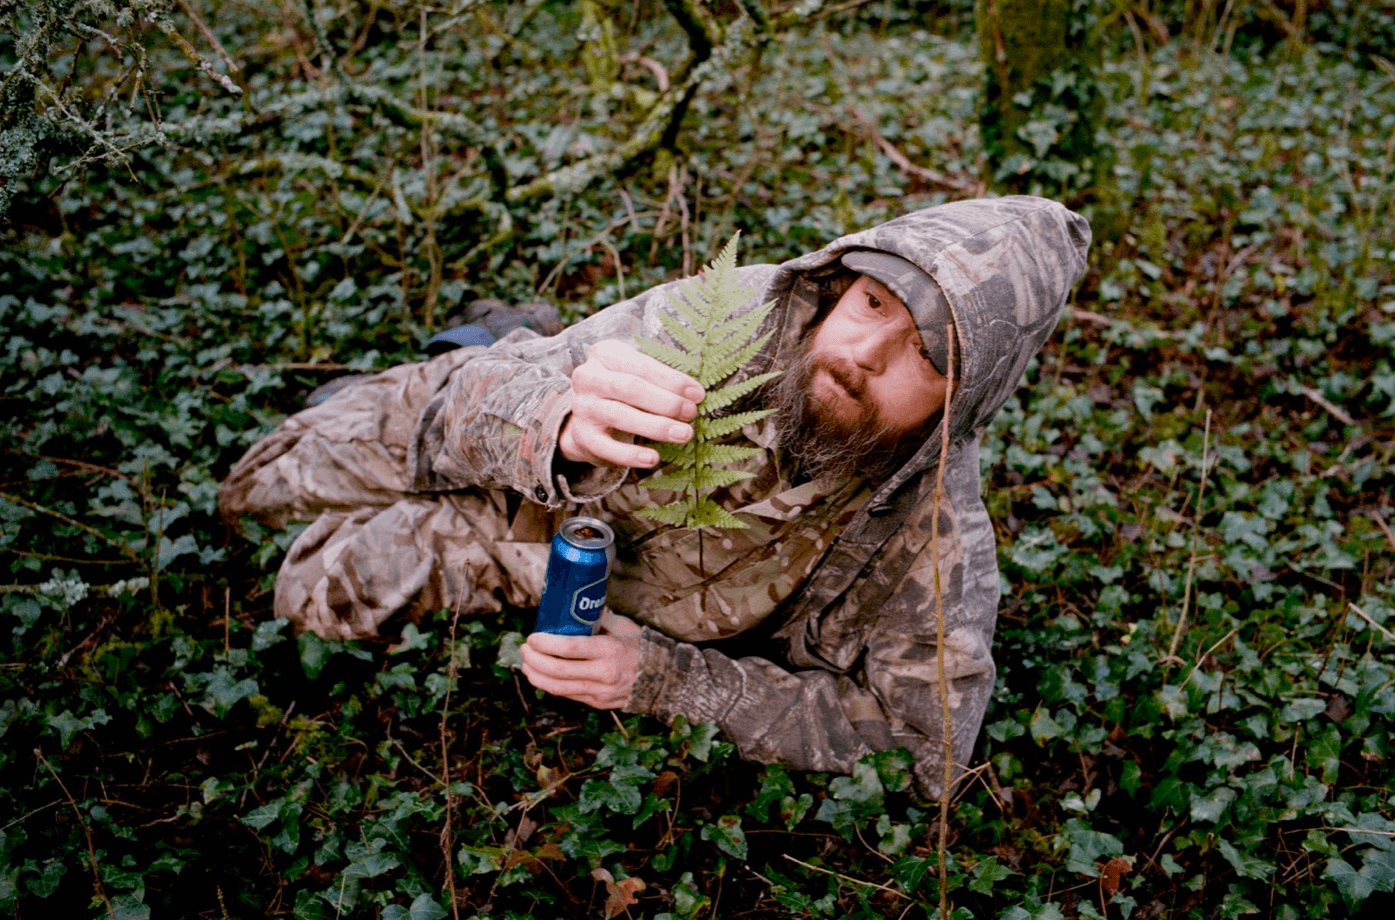 Dan Wood Pove The Great the south west collective of photography ltd man with beer laying in bush